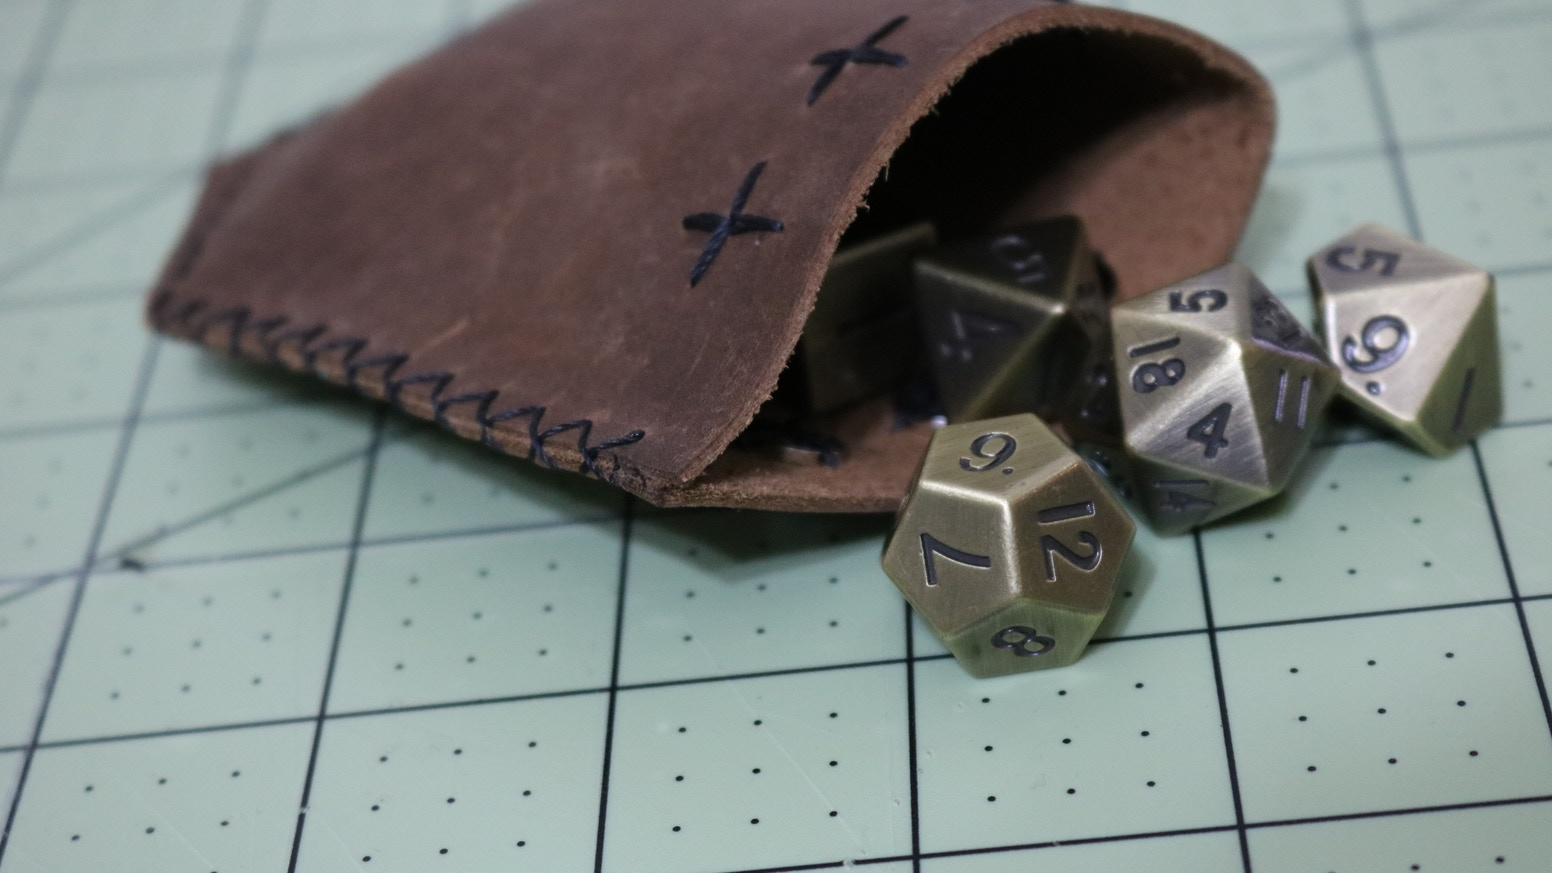 Hand stitched Italian leather dice bags designed with a low profile for comfortable pocket carry. Designed by a gamer, for gamers.